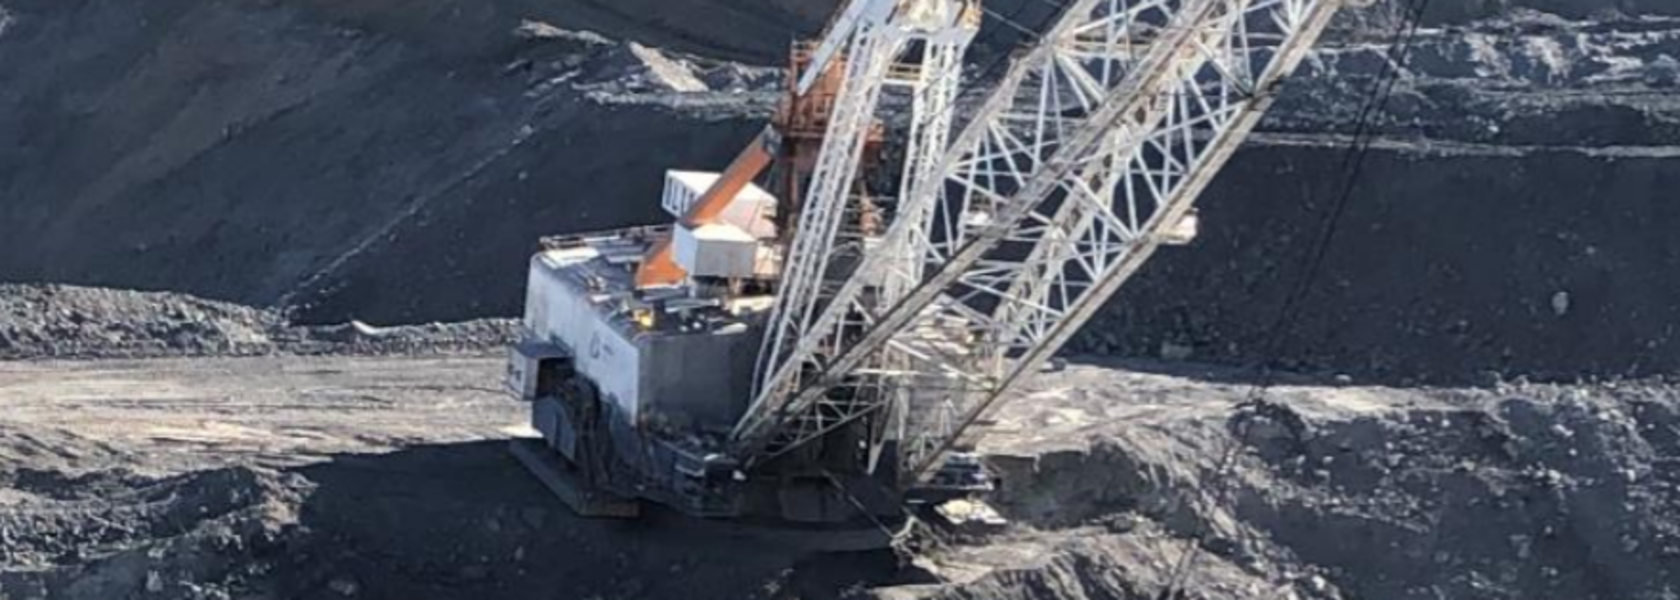 Bench failure at Qld open cut mine